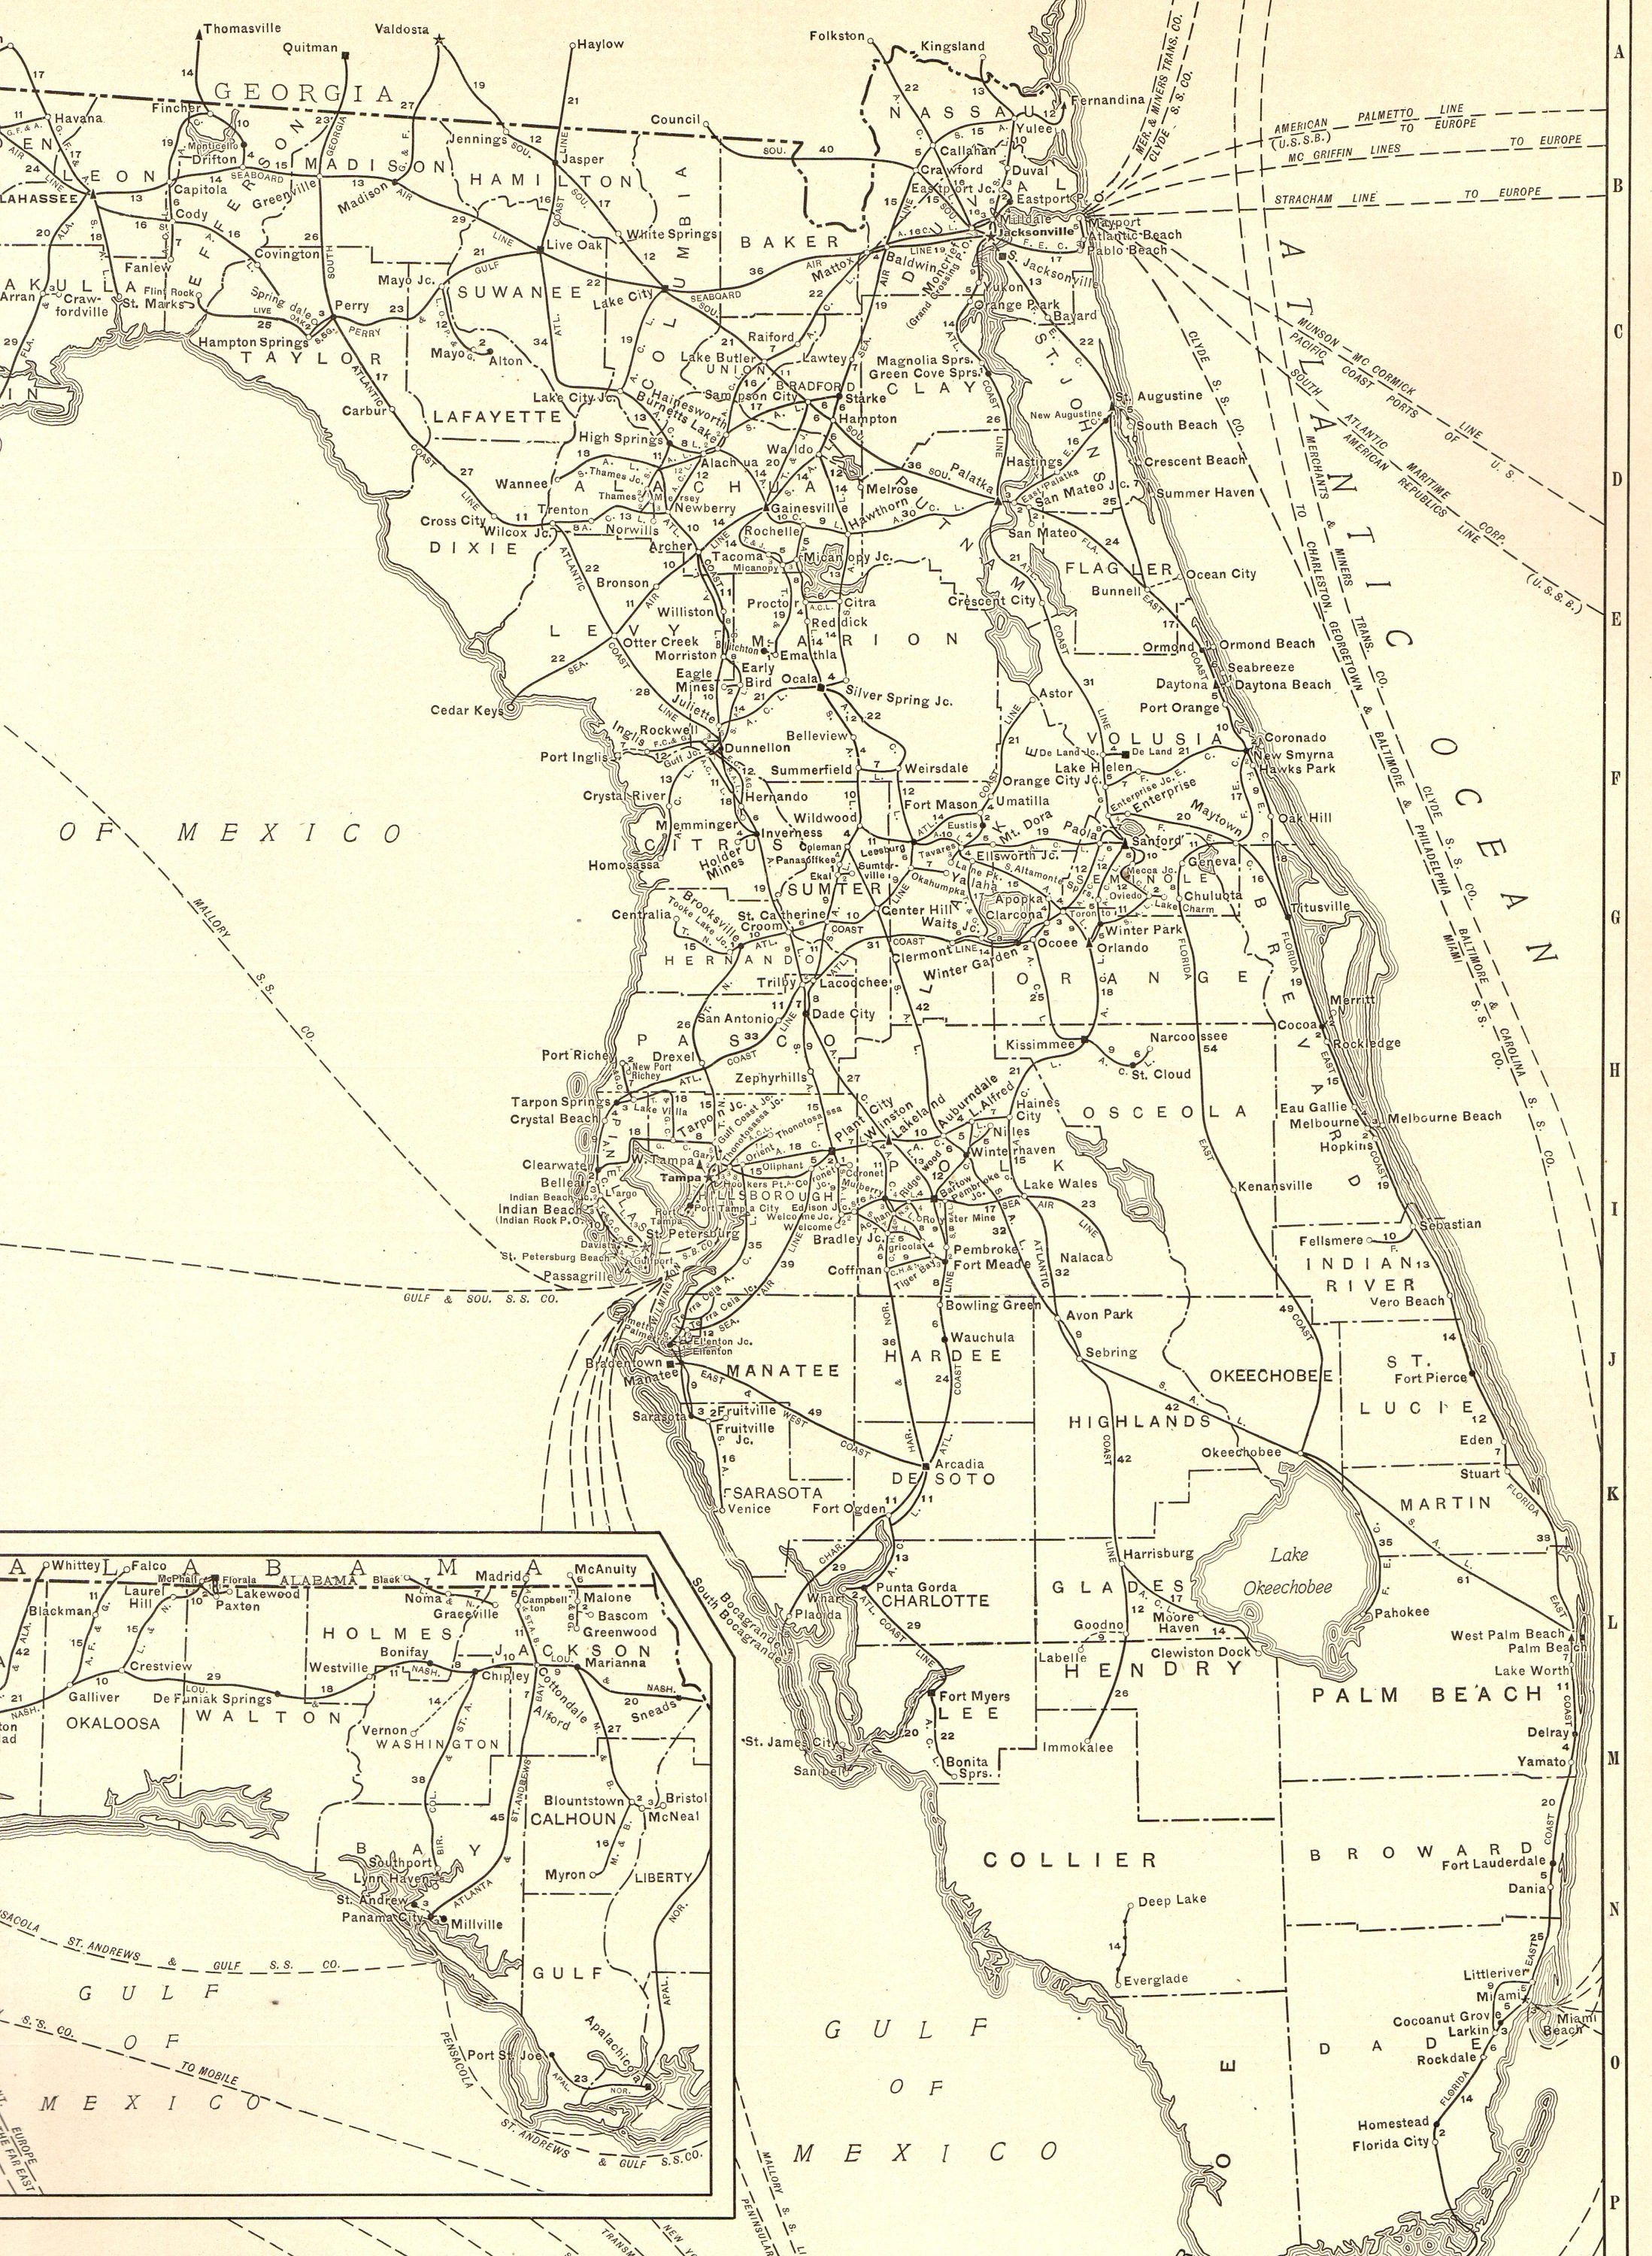 1927 Rare Size Antique Florida Map Vintage Map Of Florida Poster